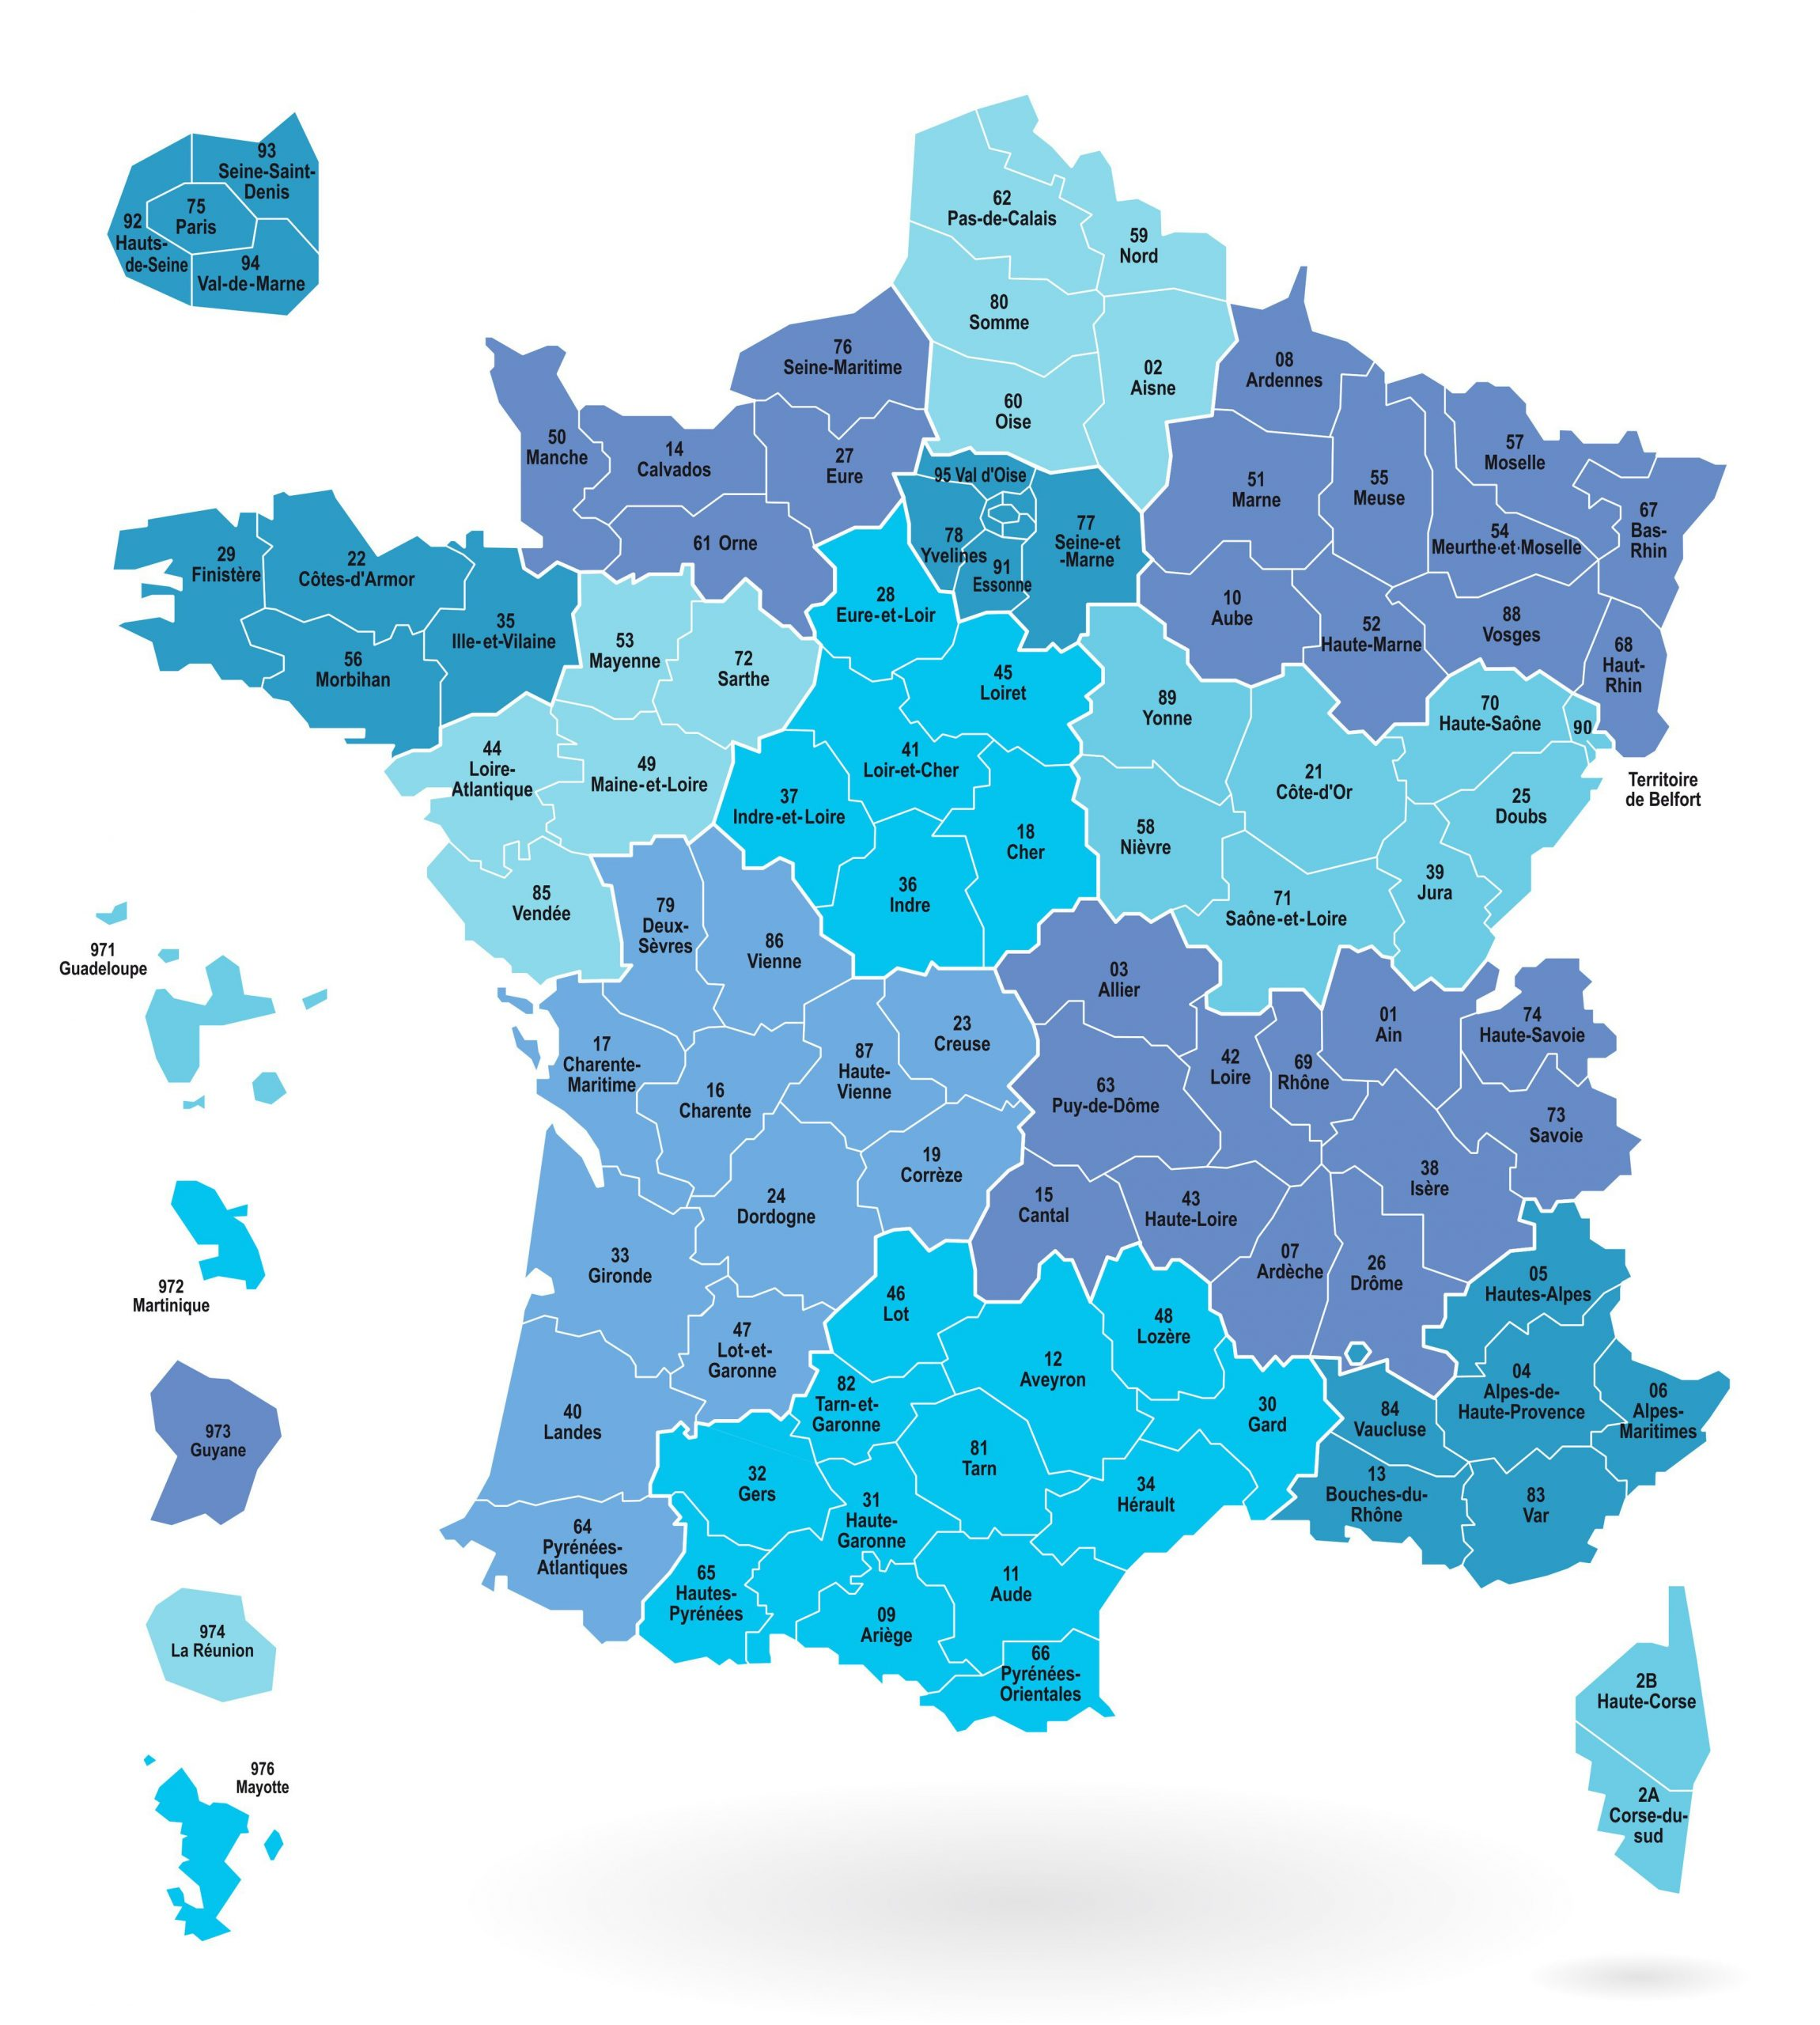 Cartes Des Départements Et Régions De La France - Cartes De destiné Carte De La France Région